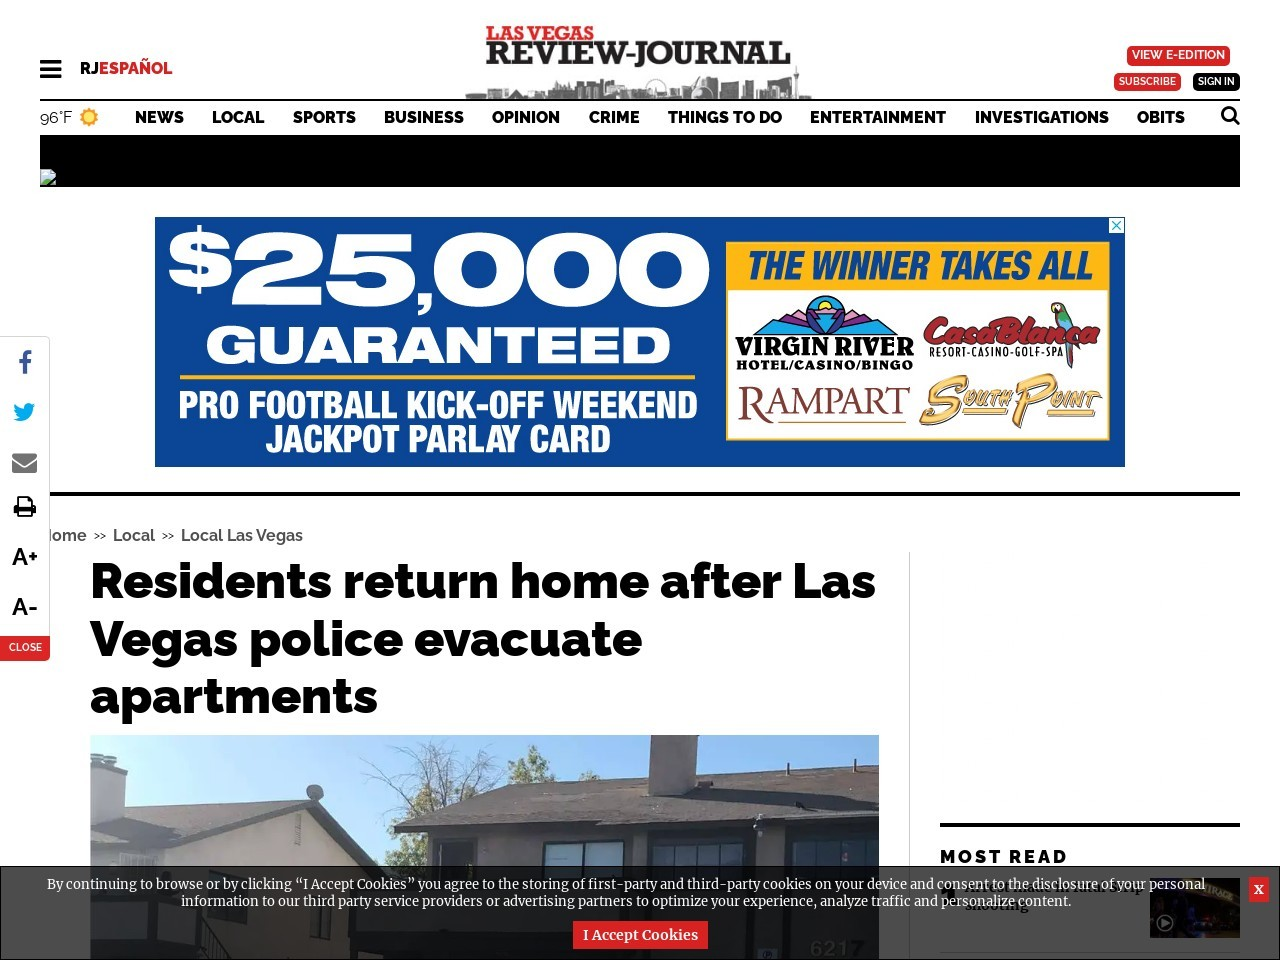 Las Vegas police evacuate apartments after report of man with gun